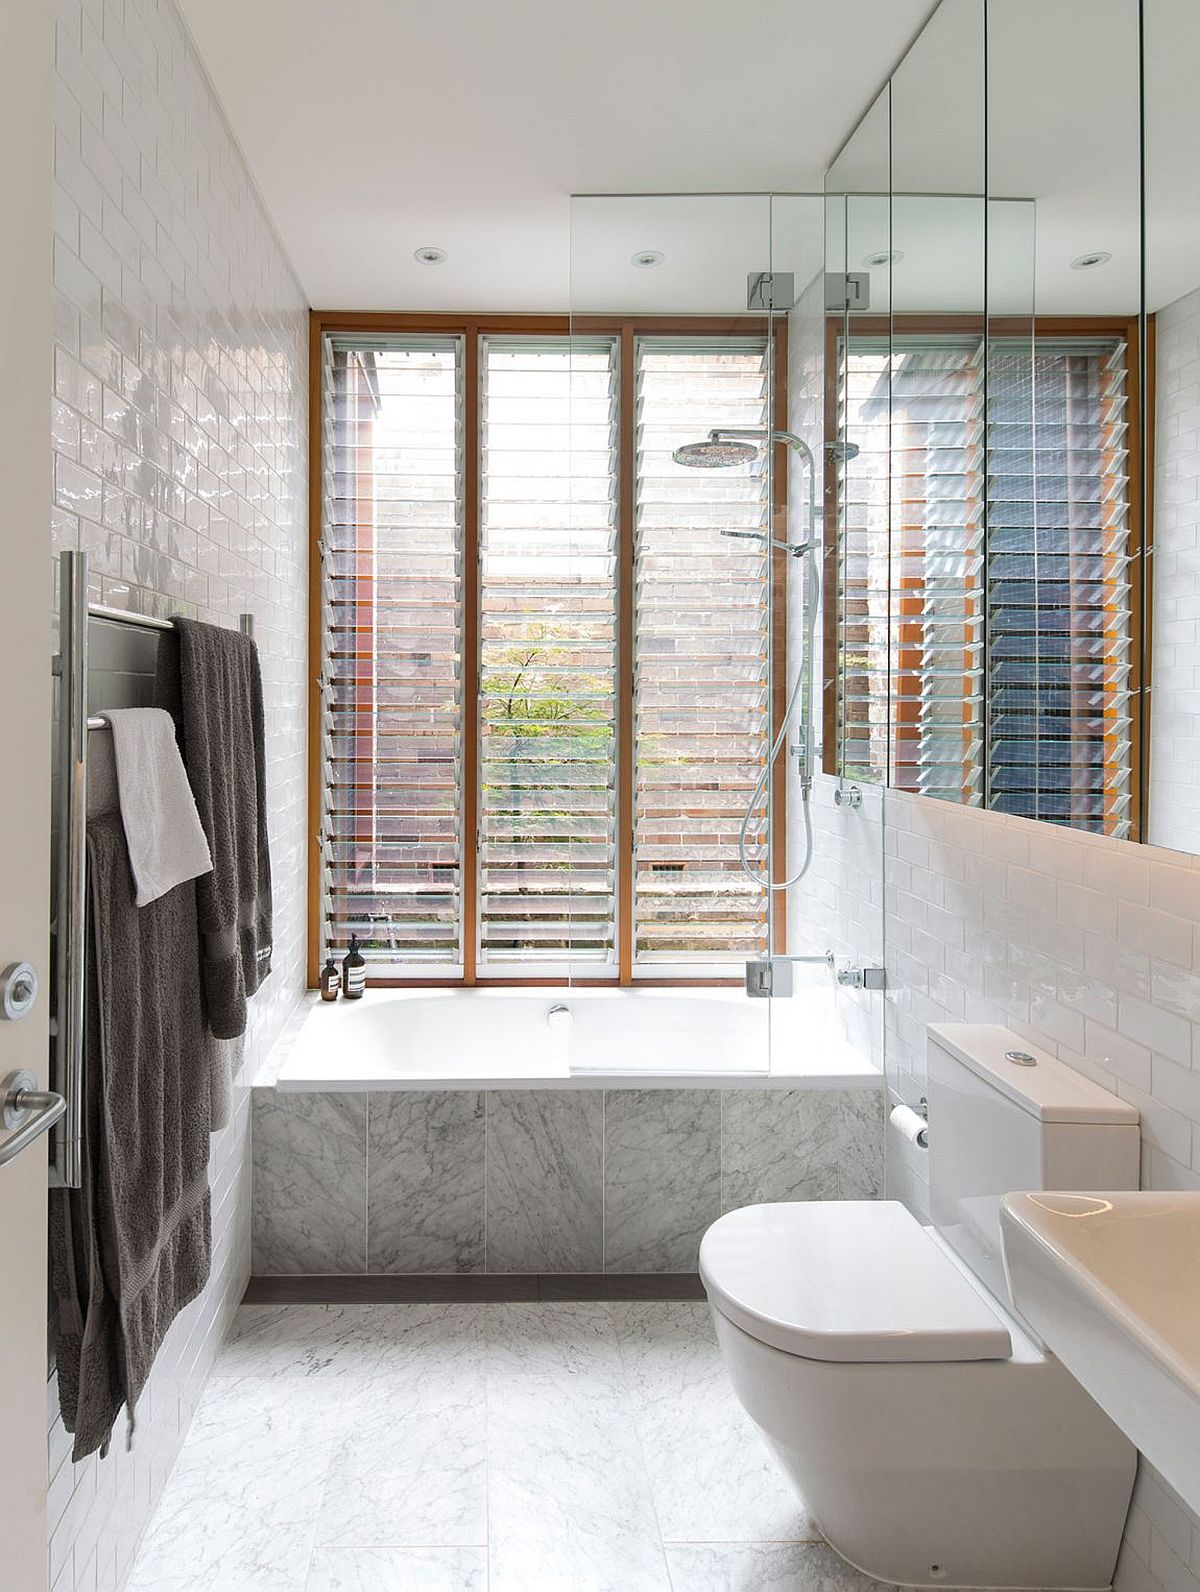 Contemporary bathroom in white with a large window